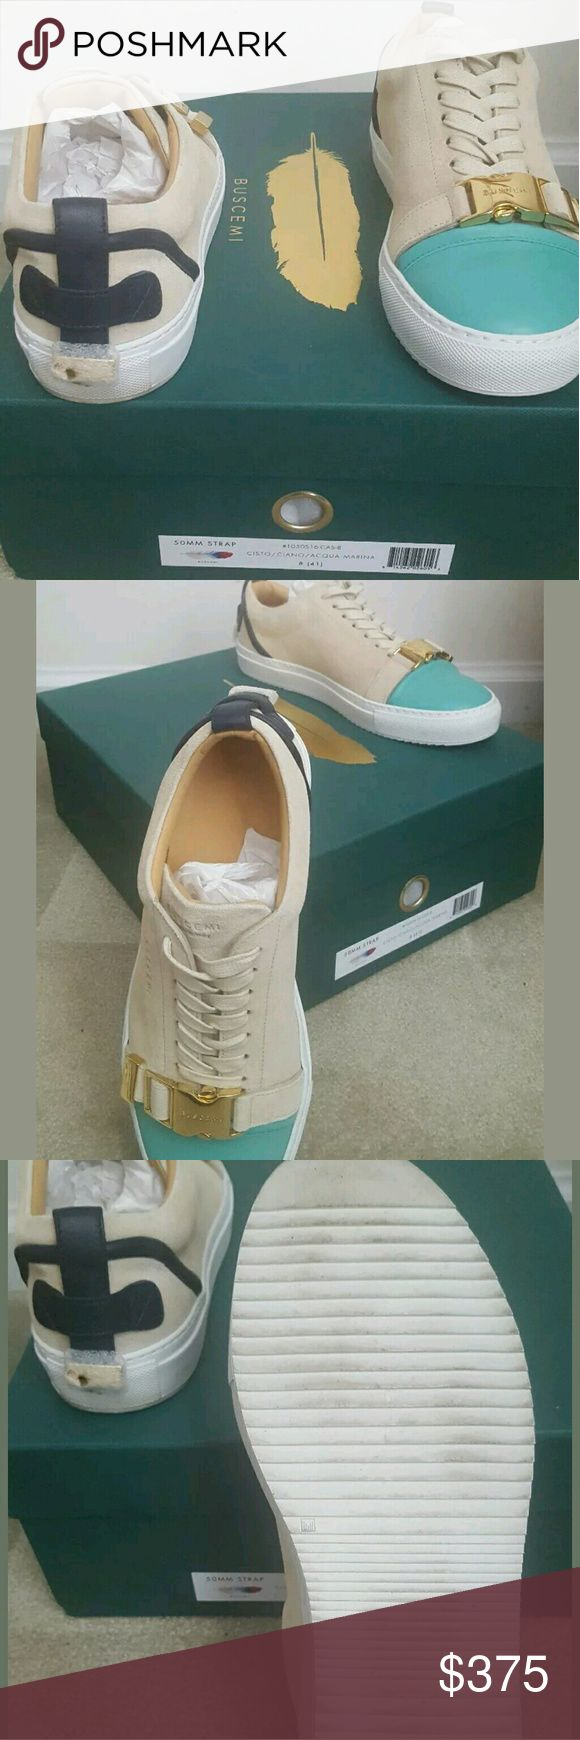 Authentic Buscemi 50mm Strap Lightly Worn Sneakers Buscemi Shoes Sneakers